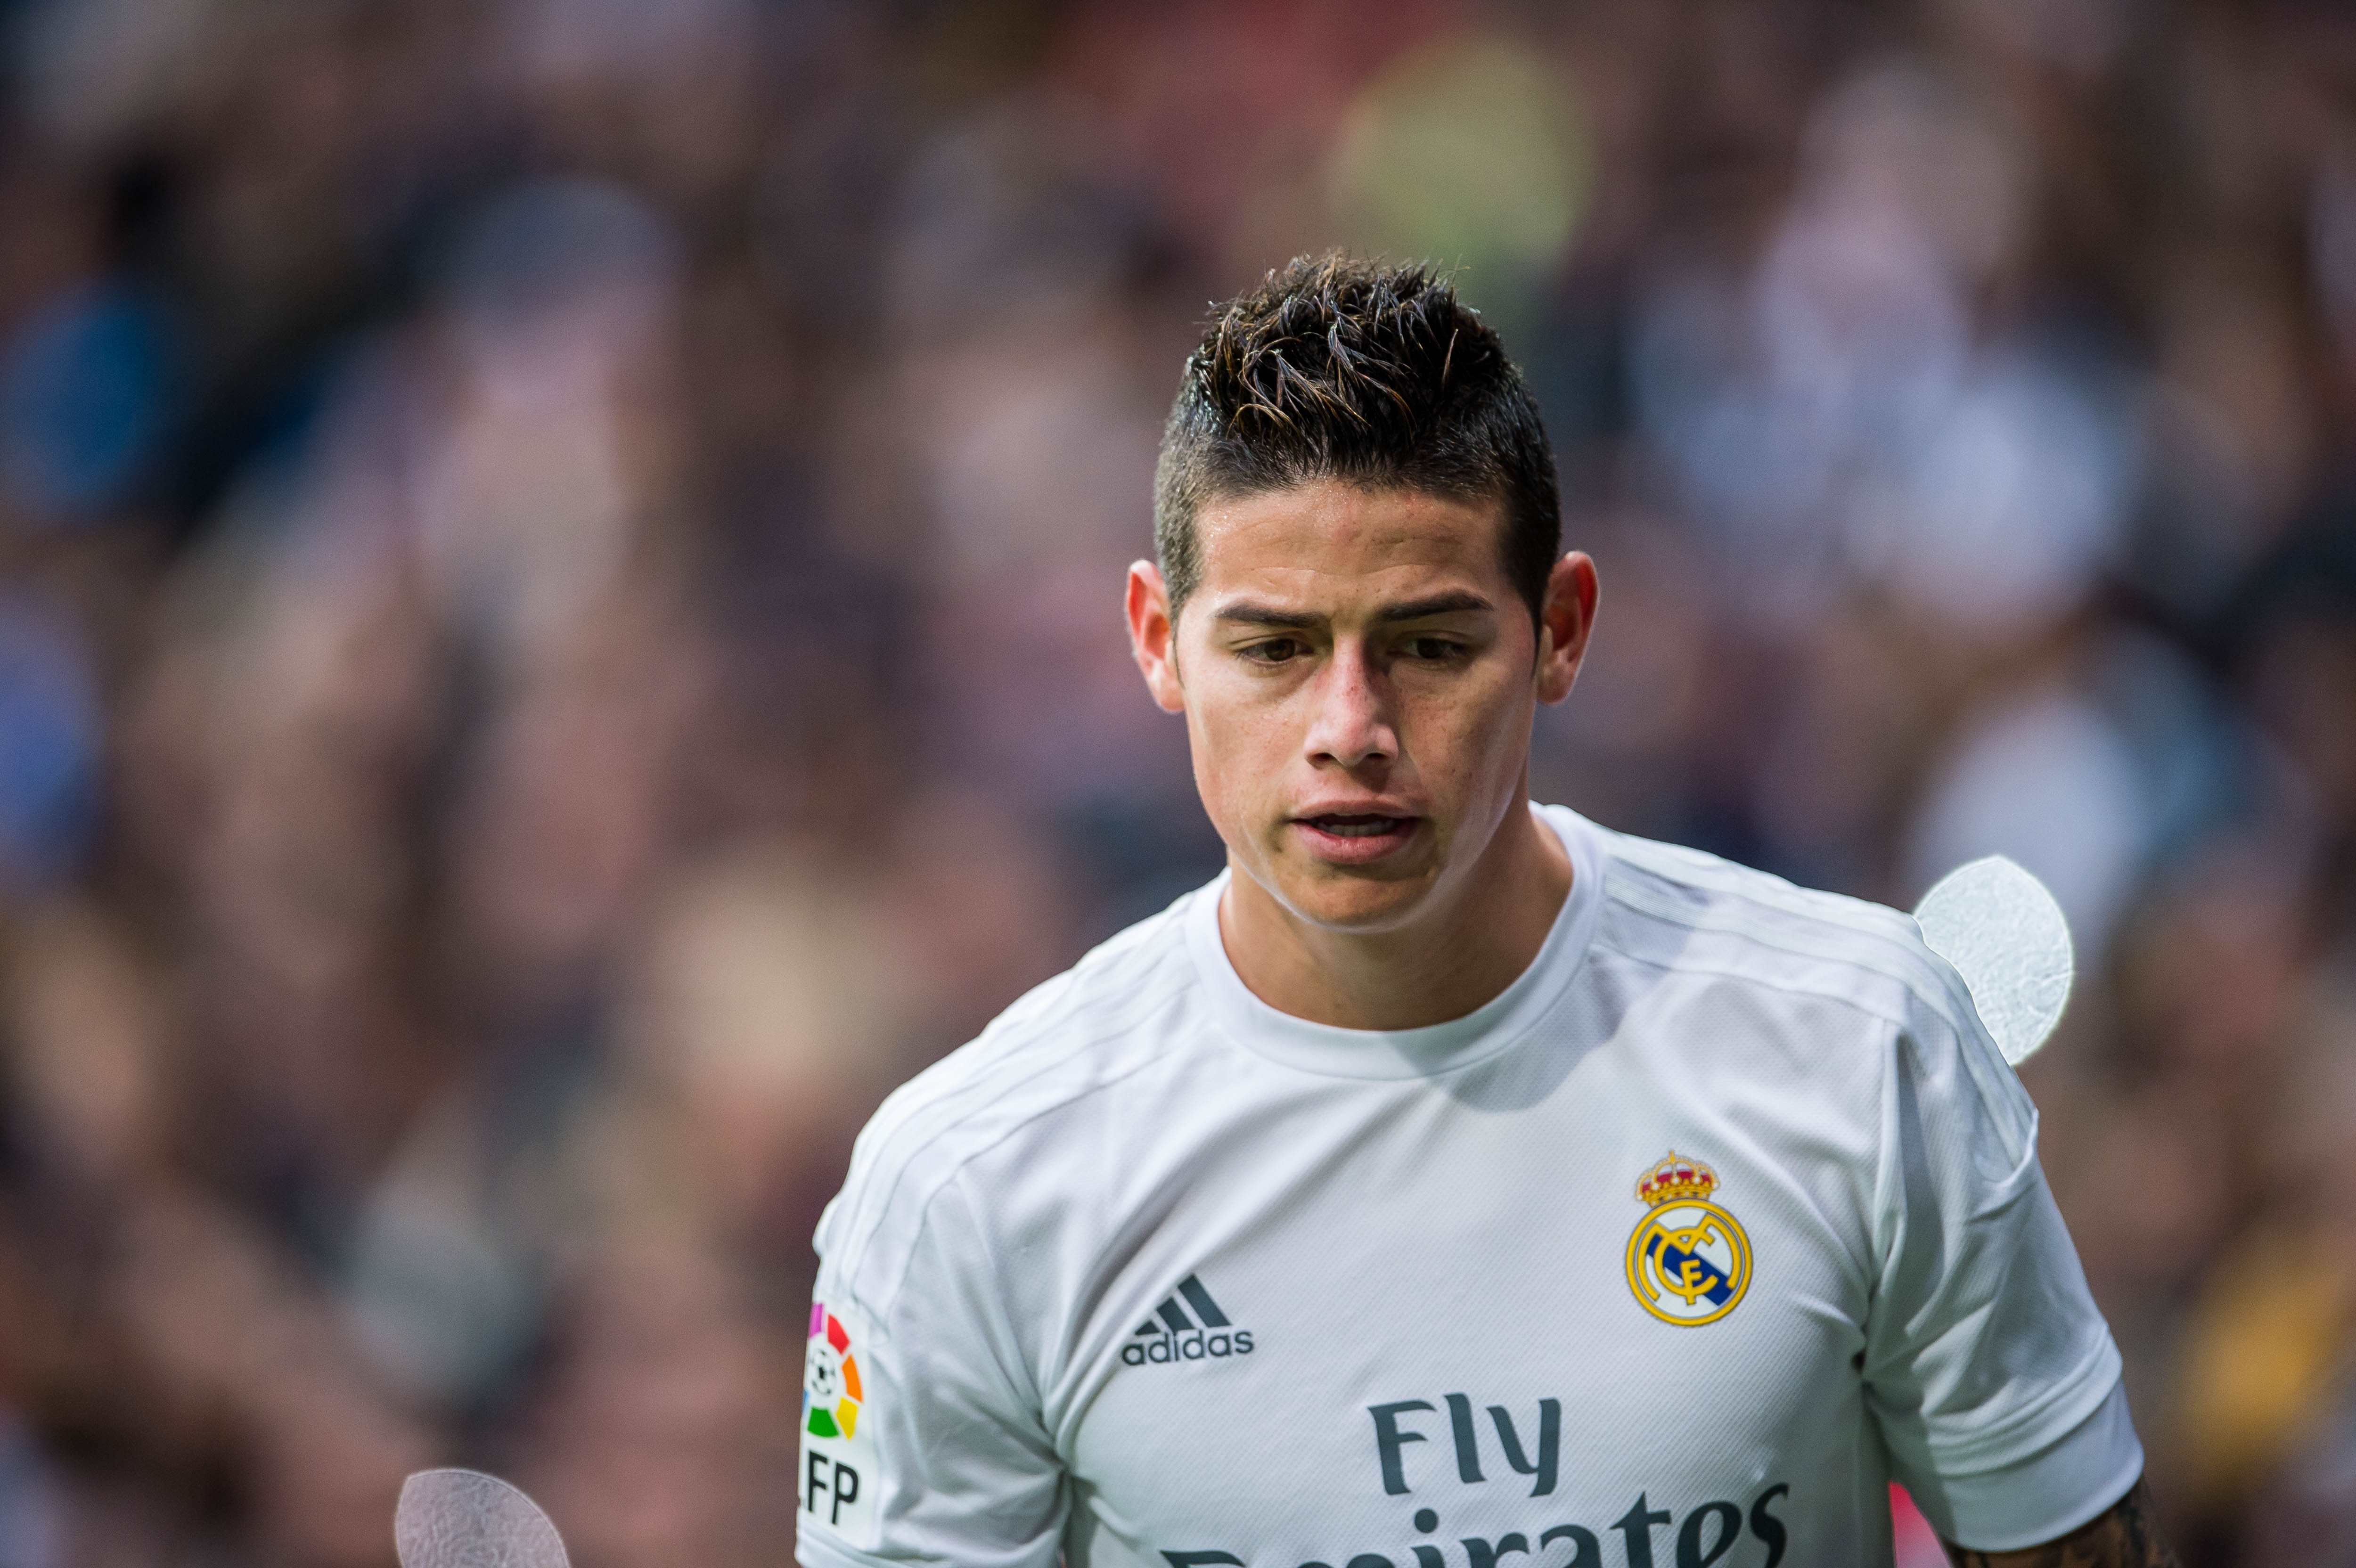 MADRID, SPAIN - DECEMBER 30:  James Rodriguez of Real Madrid CF looks on during the Real Madrid CF vs Real Sociedad as part of the Liga BBVA 2015-2016 at Estadio Santiago Bernabeu on December 30, 2015 in Madrid, Spain.  (Photo by Aitor Alcalde/Power Sport Images/Getty Images)